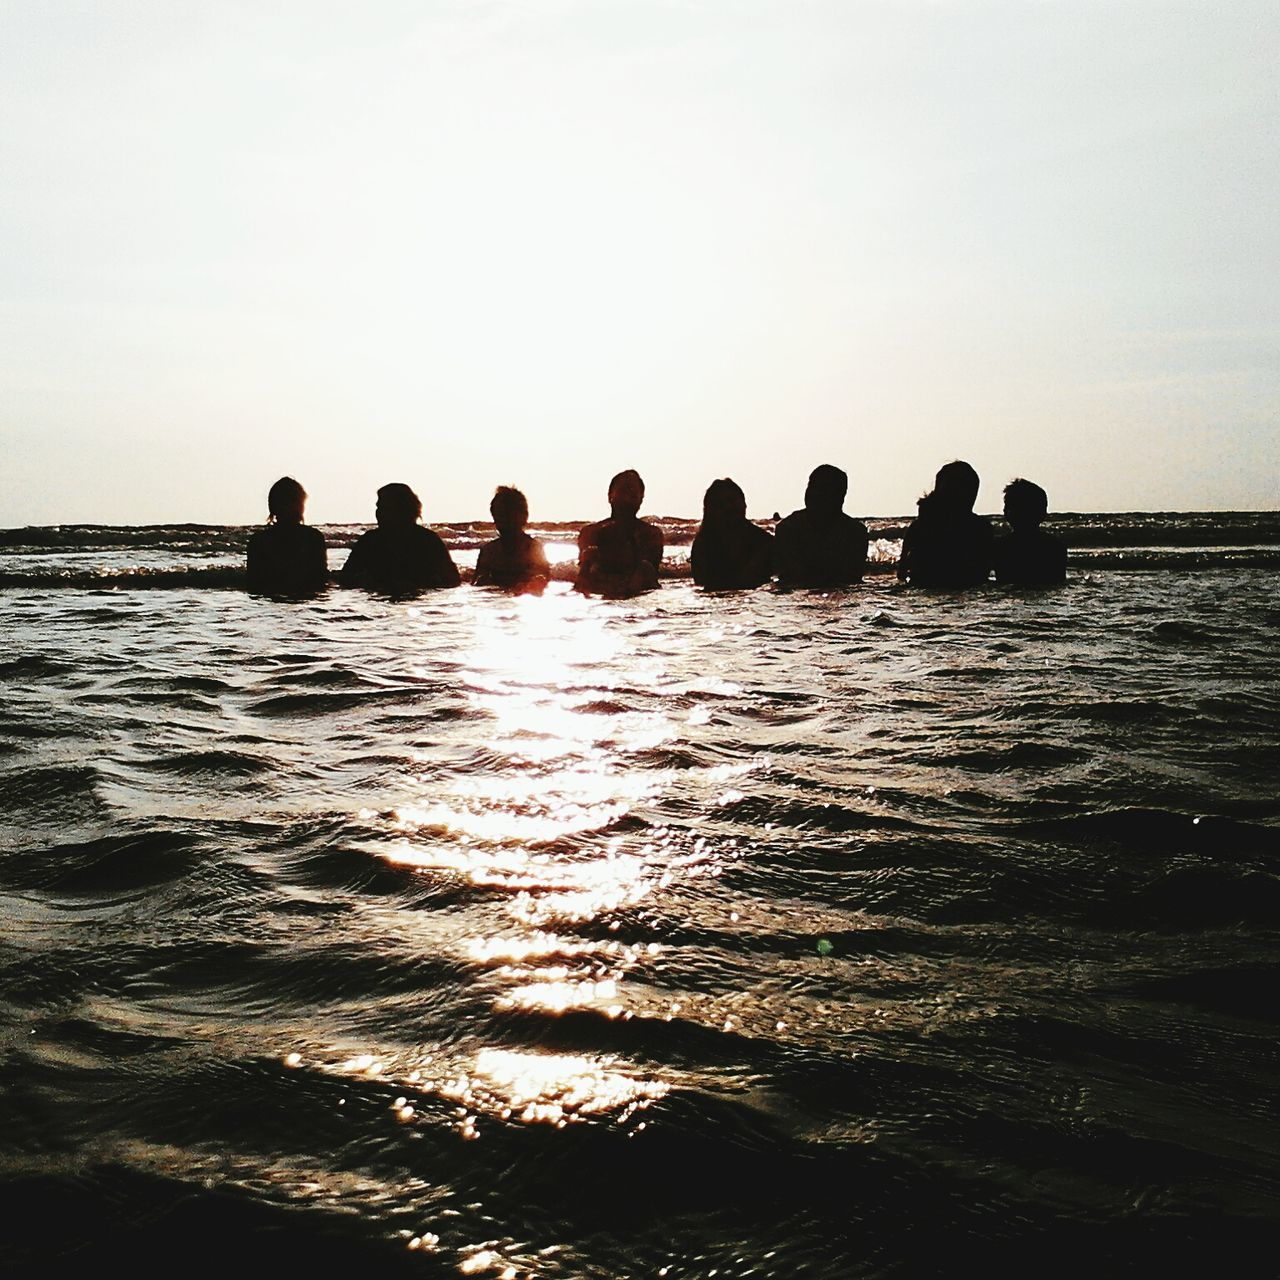 water, large group of people, leisure activity, sea, silhouette, vacations, lifestyles, sunlight, real people, men, sky, outdoors, sunset, togetherness, horizon over water, nature, swimming pool, women, scenics, day, clear sky, friendship, beauty in nature, people